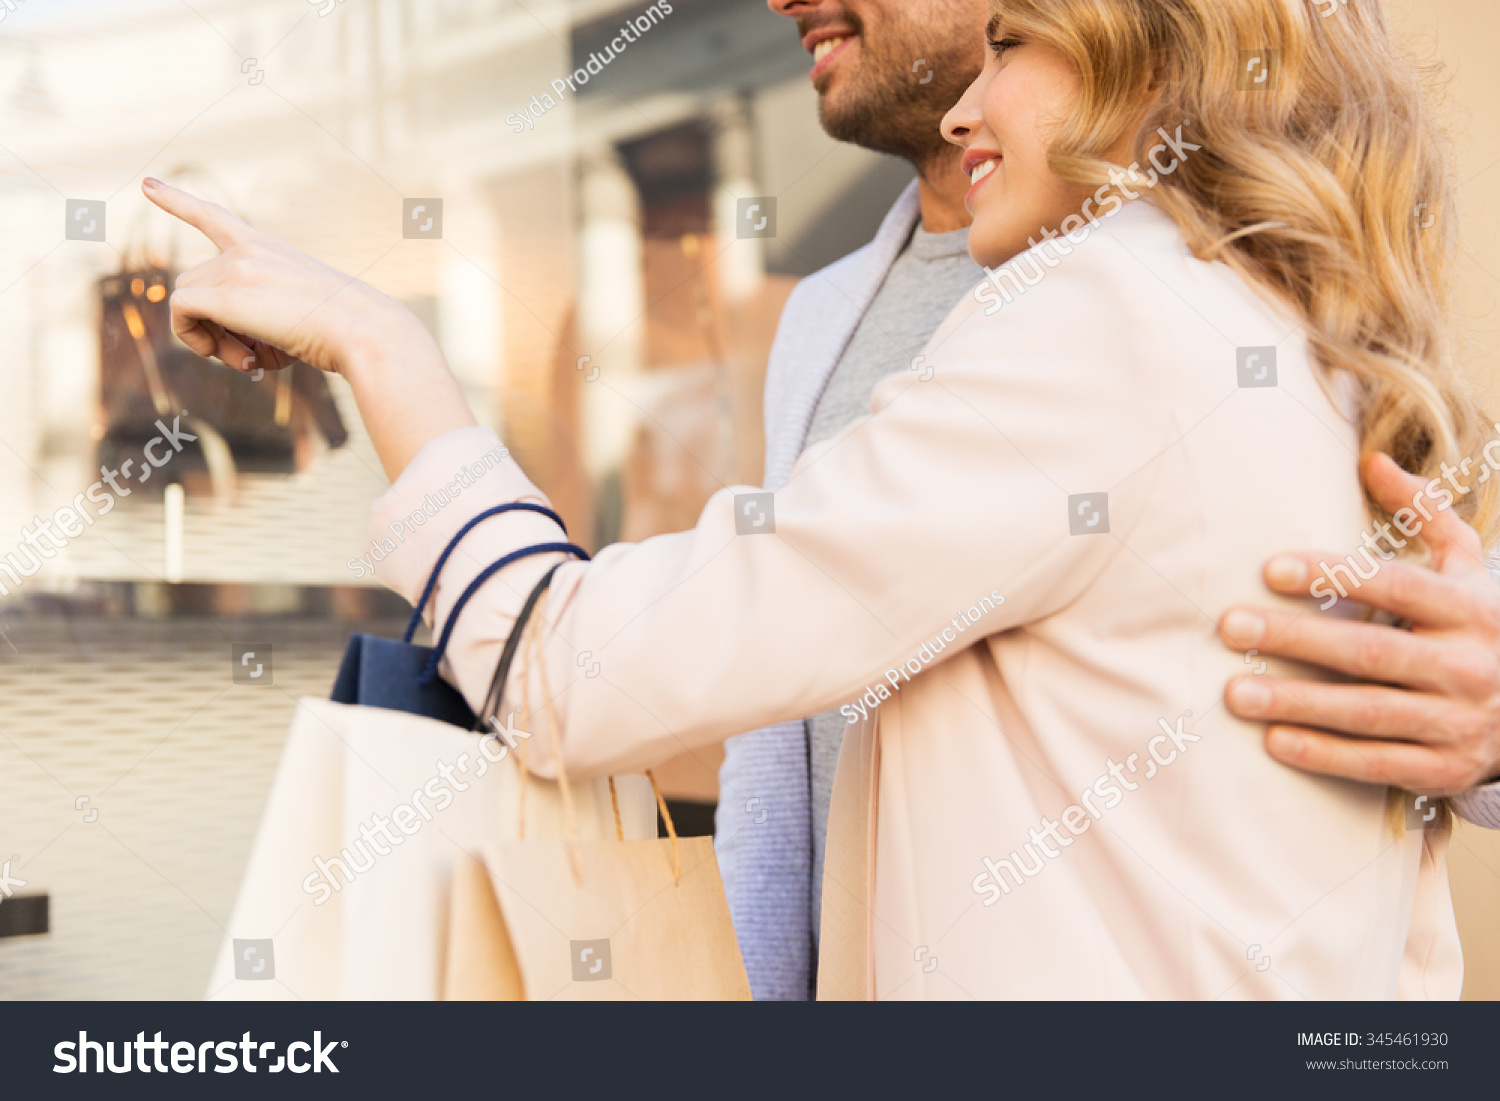 stock-photo-sale-consumerism-and-people-concept-close-up-of-happy-couple-with-shopping-bags-looking-at-shop-345461930.jpg